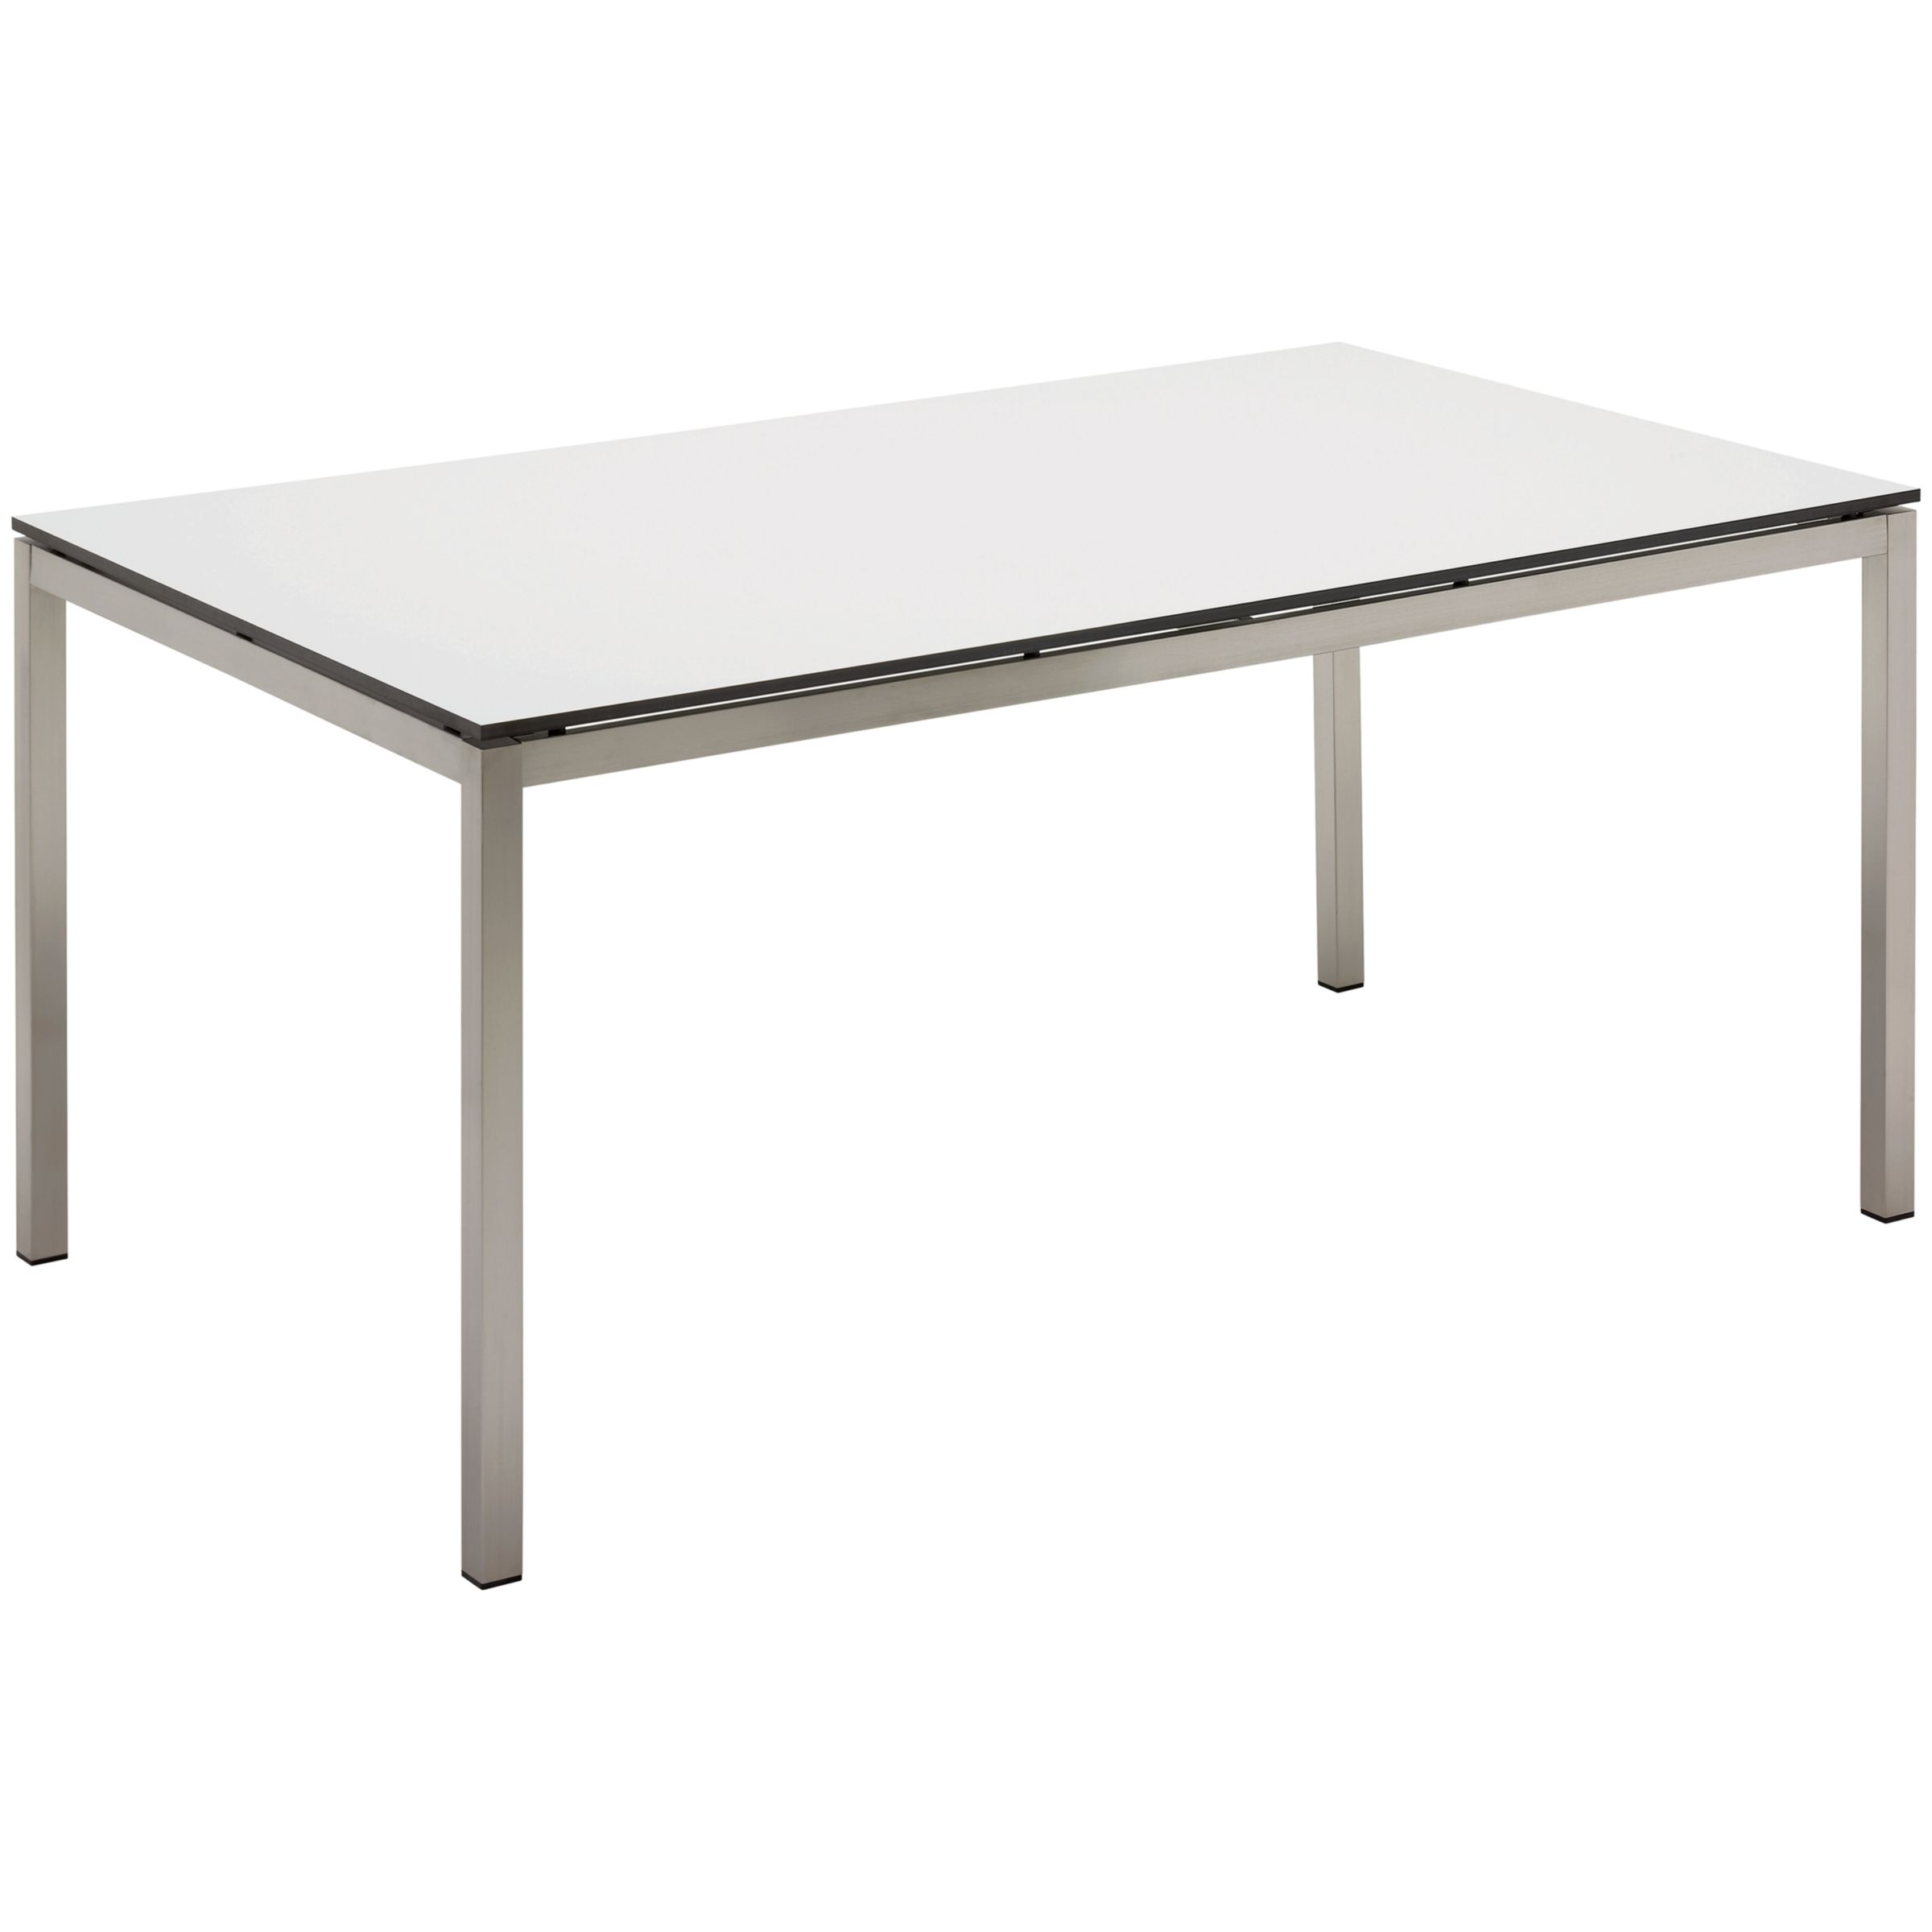 Gloster Kore Rectangular 6 Seater Outdoor Dining Table, White HPL